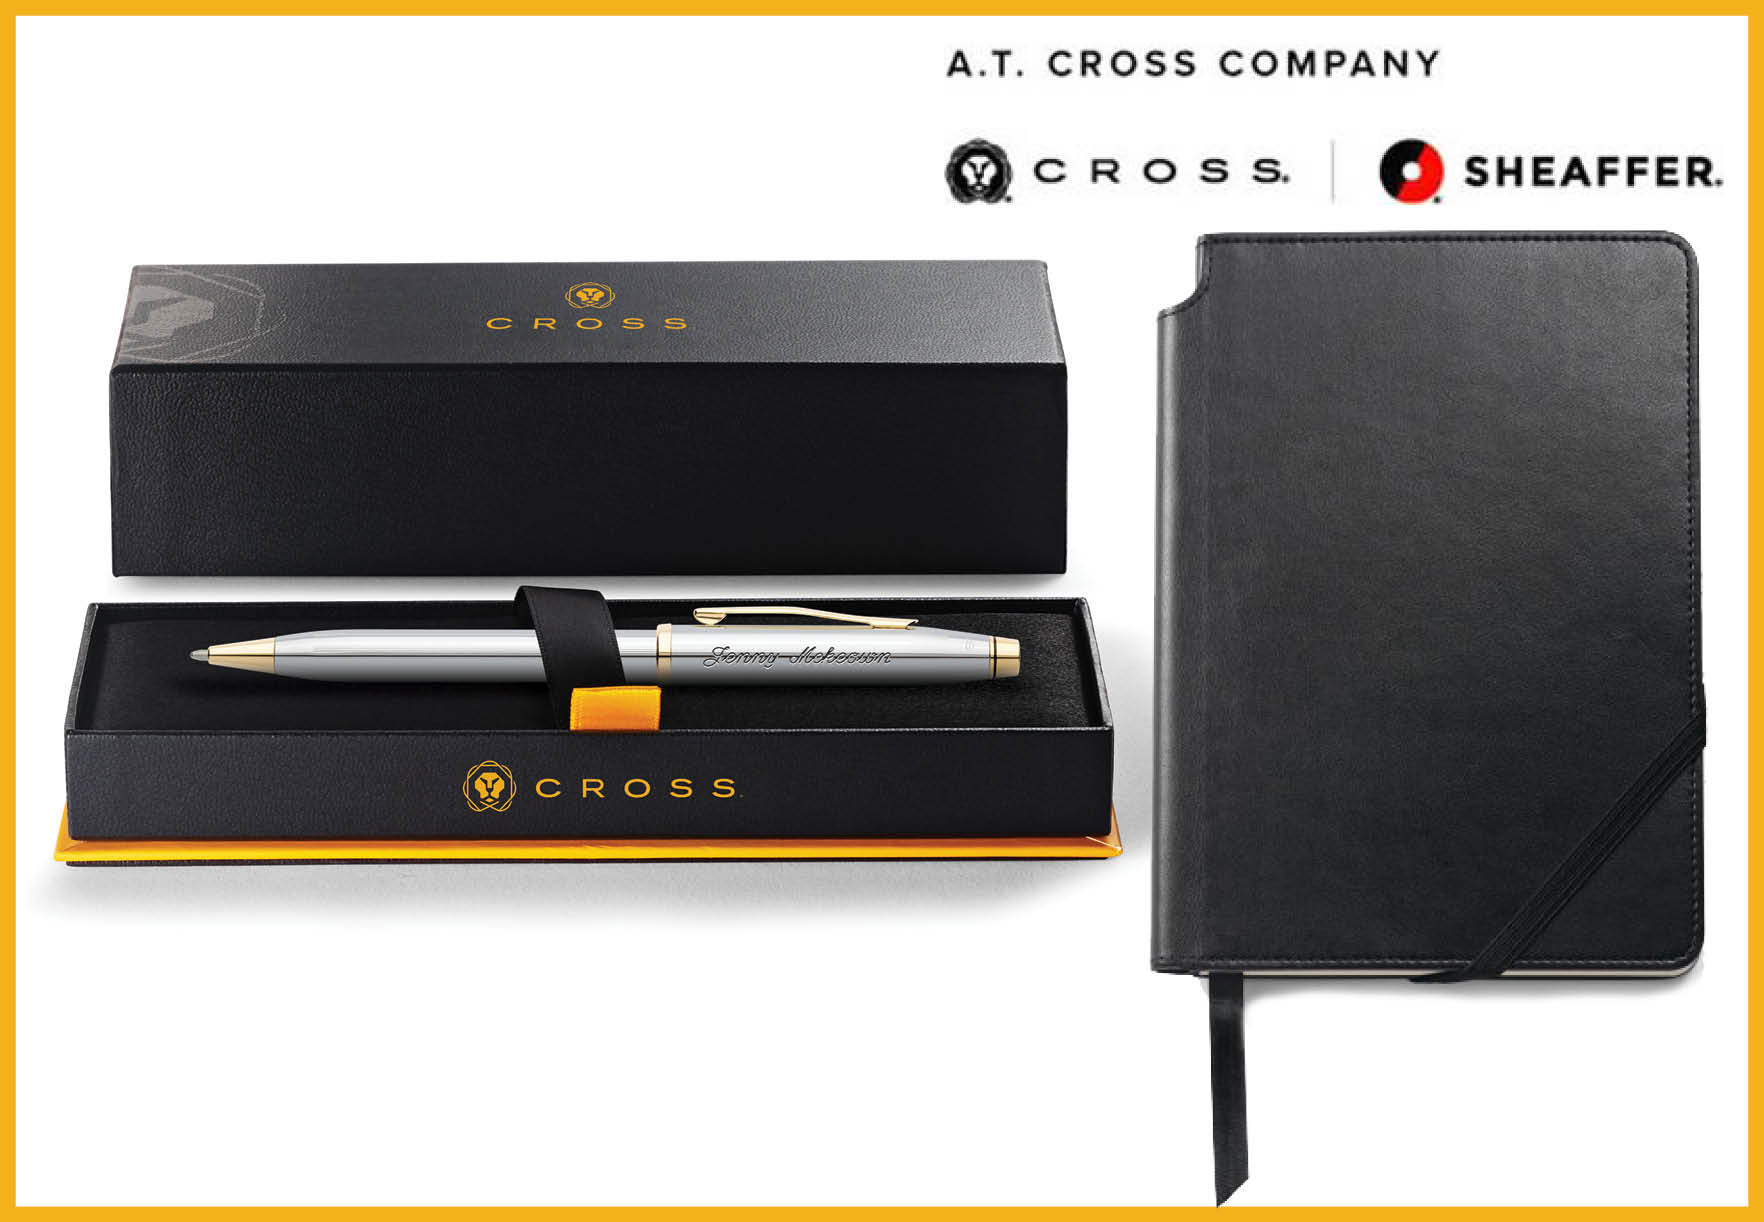 Cross pen and journal combination set